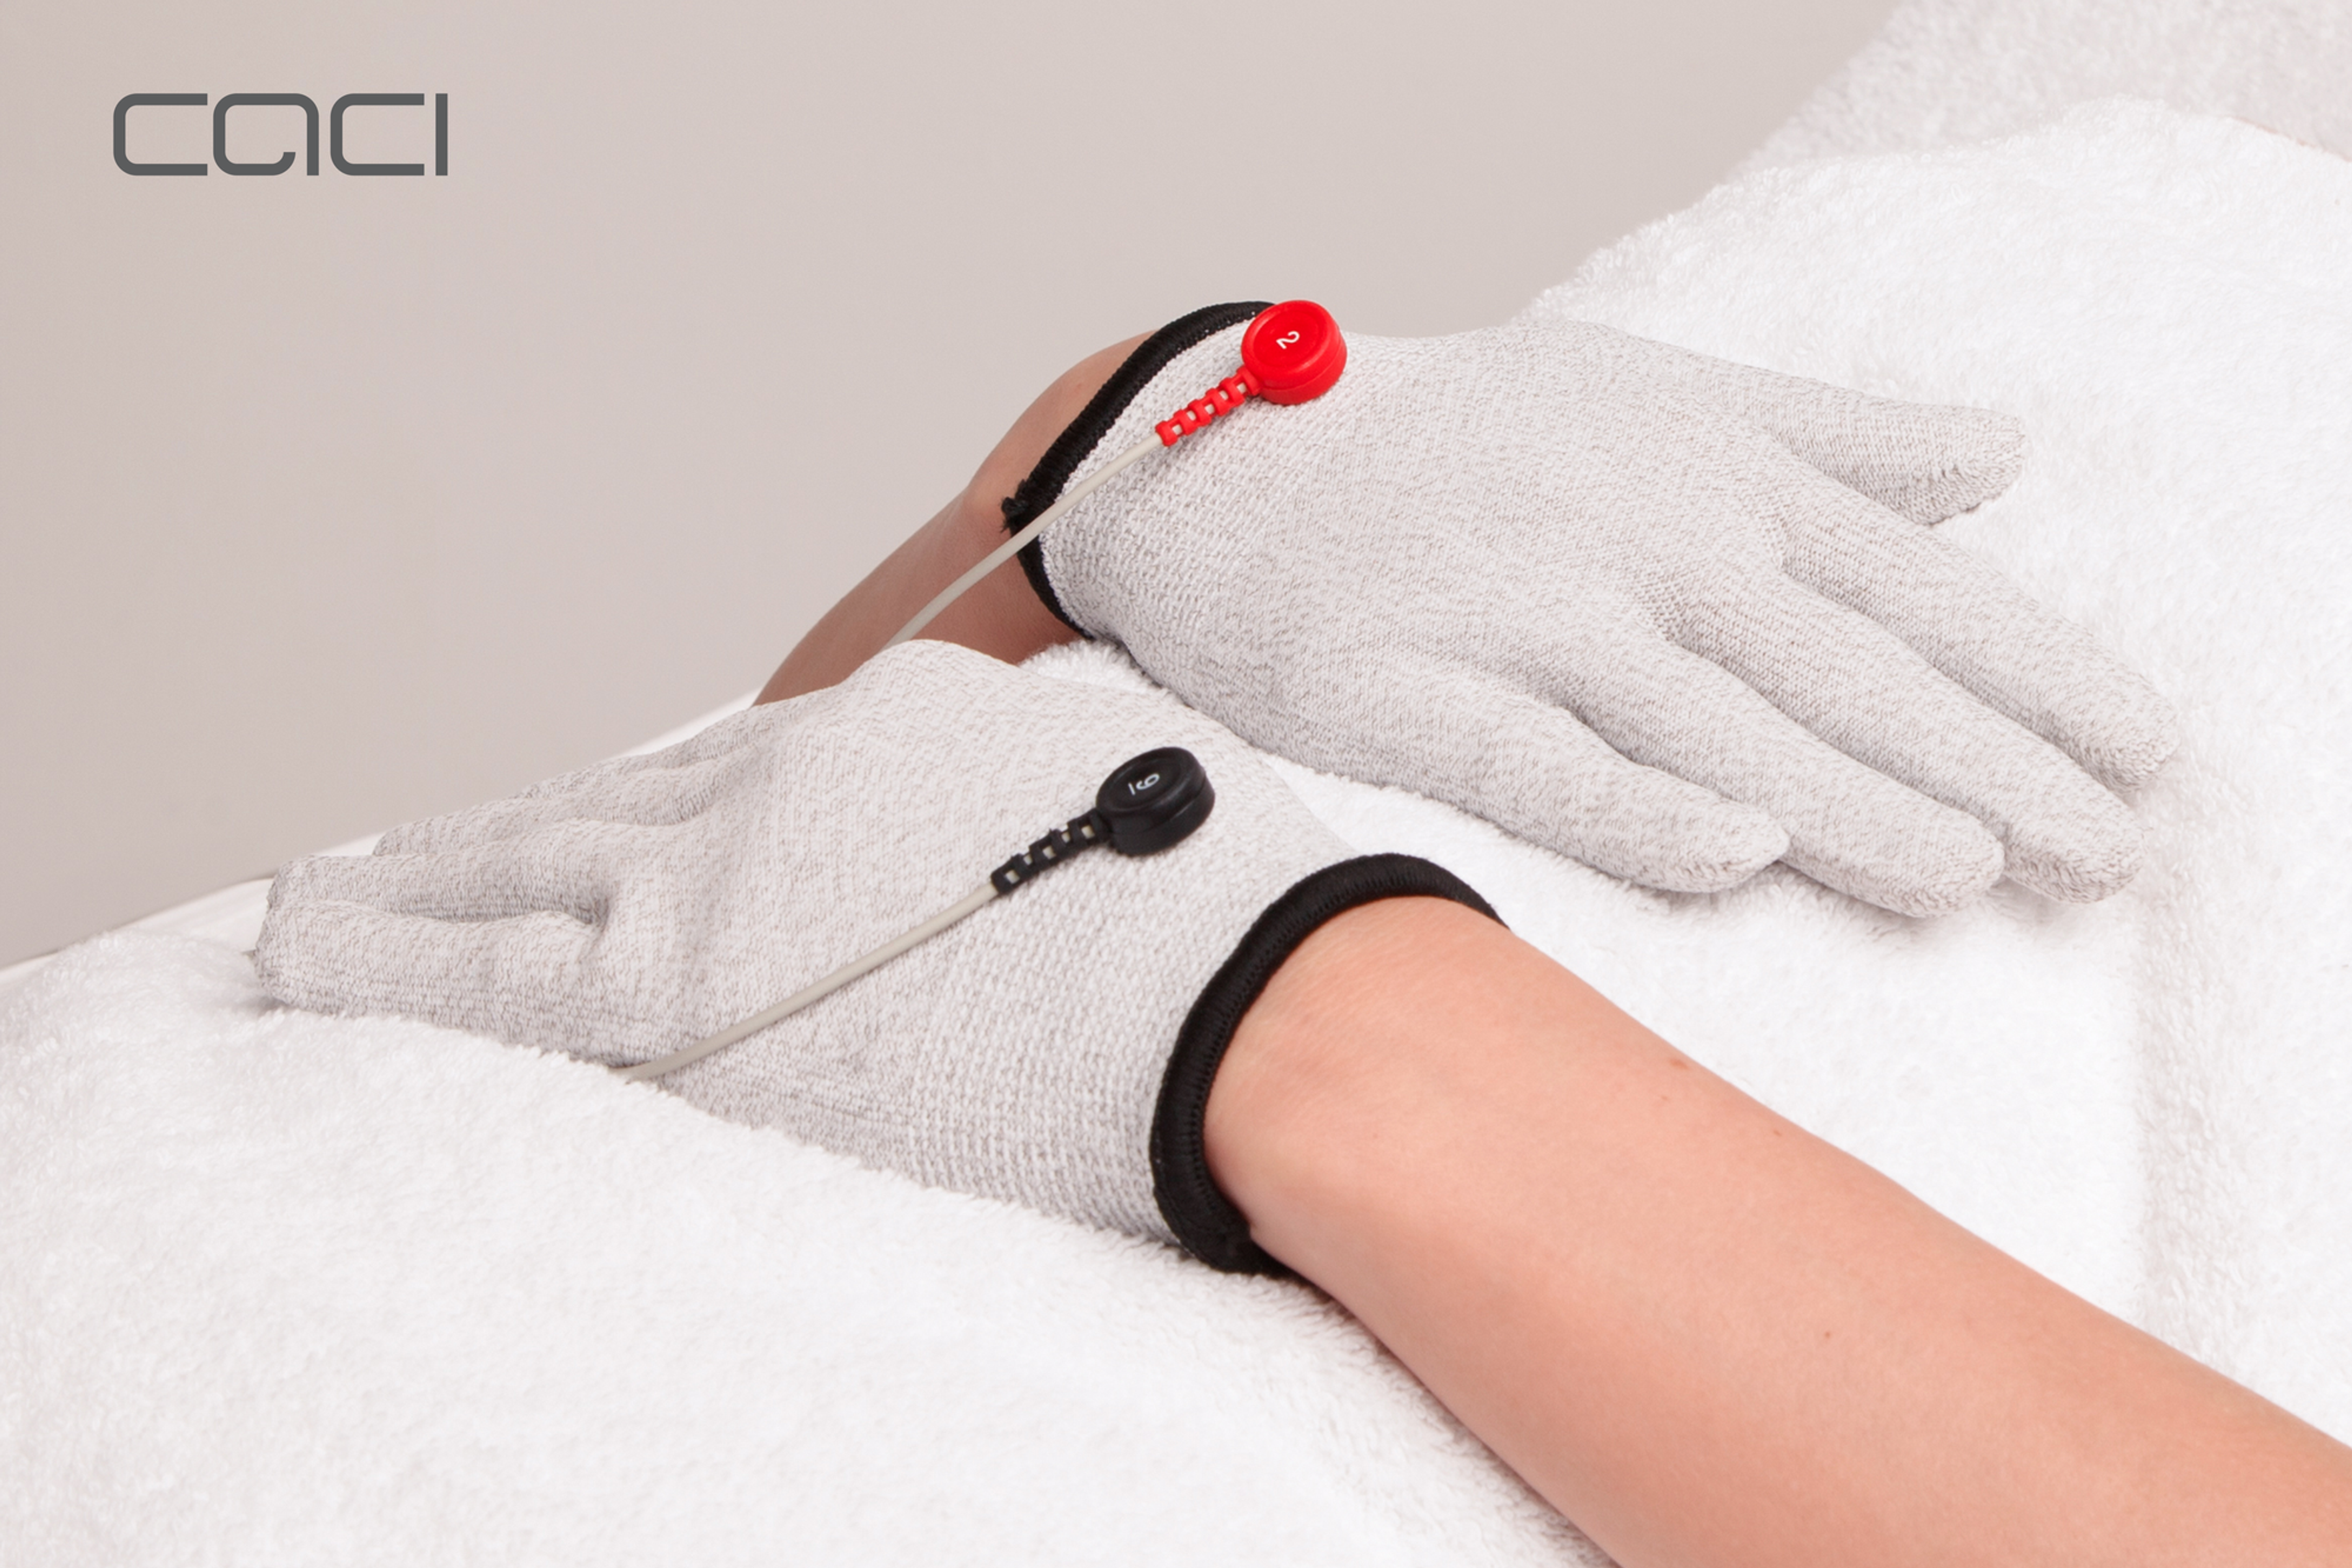 Hand Rejuvenation with Electro Gloves